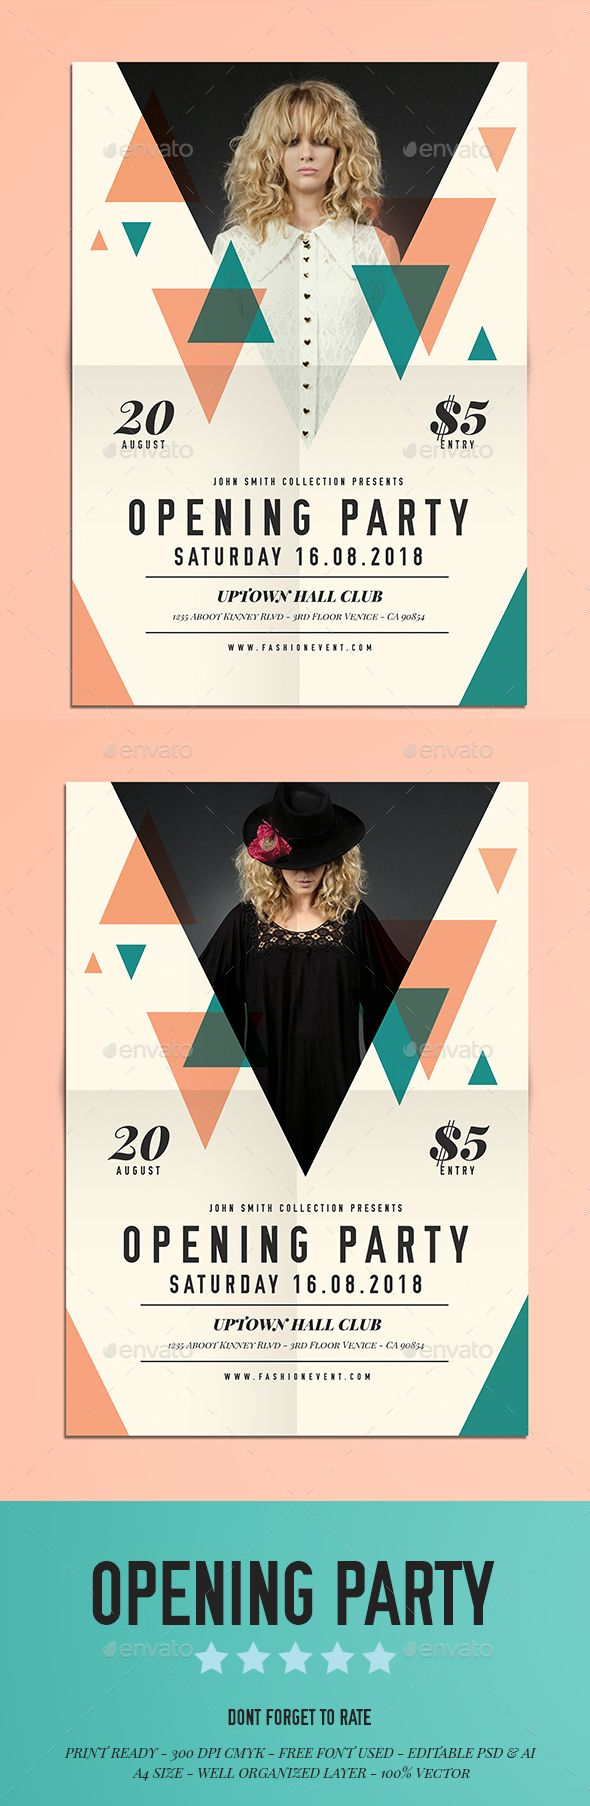 Captivating Opening Party Flyer Ideas Event Flyer Examples